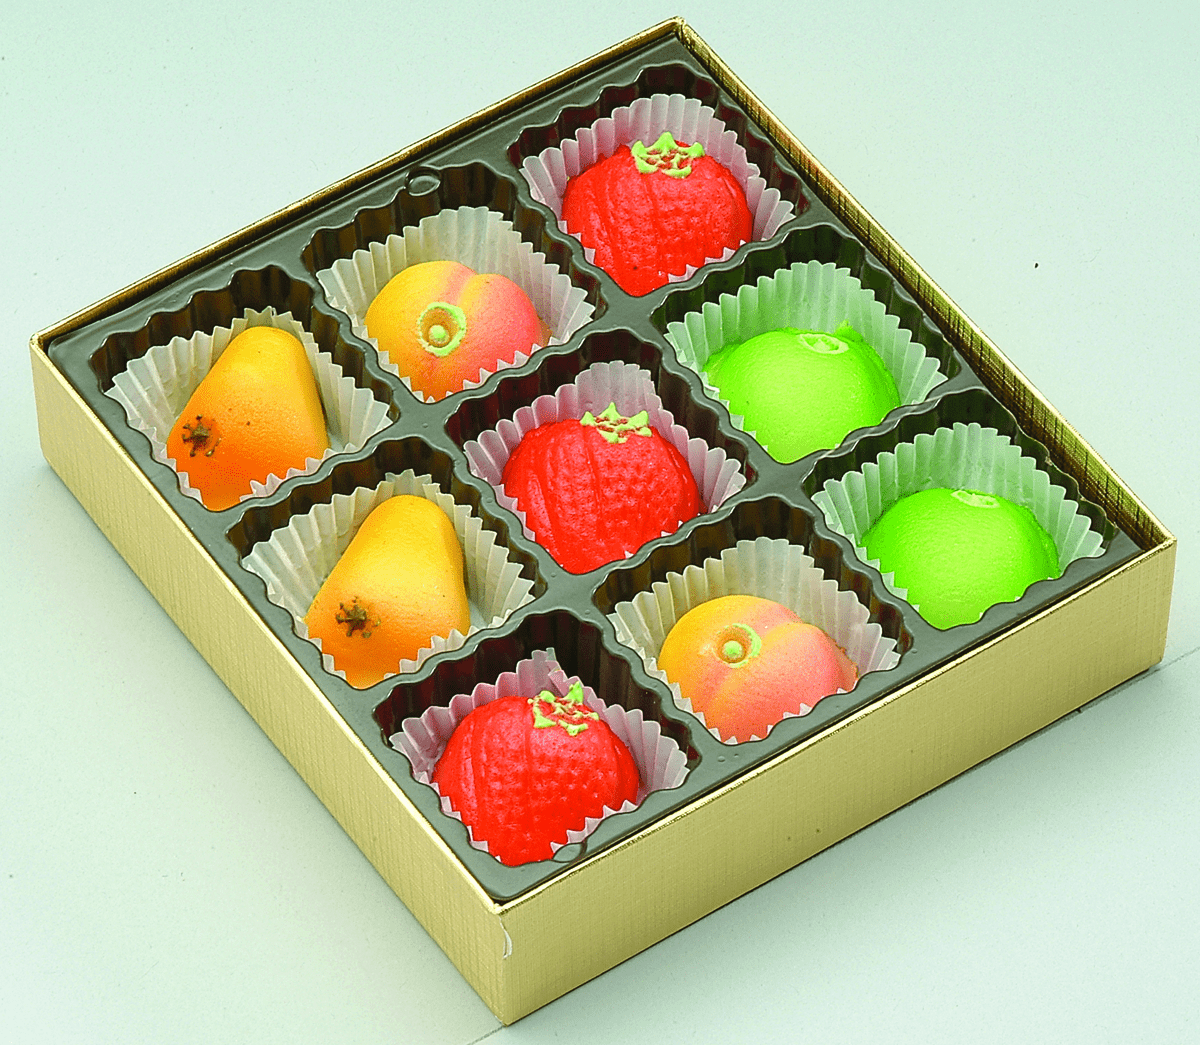 M-43 9 PIECE FRUIT